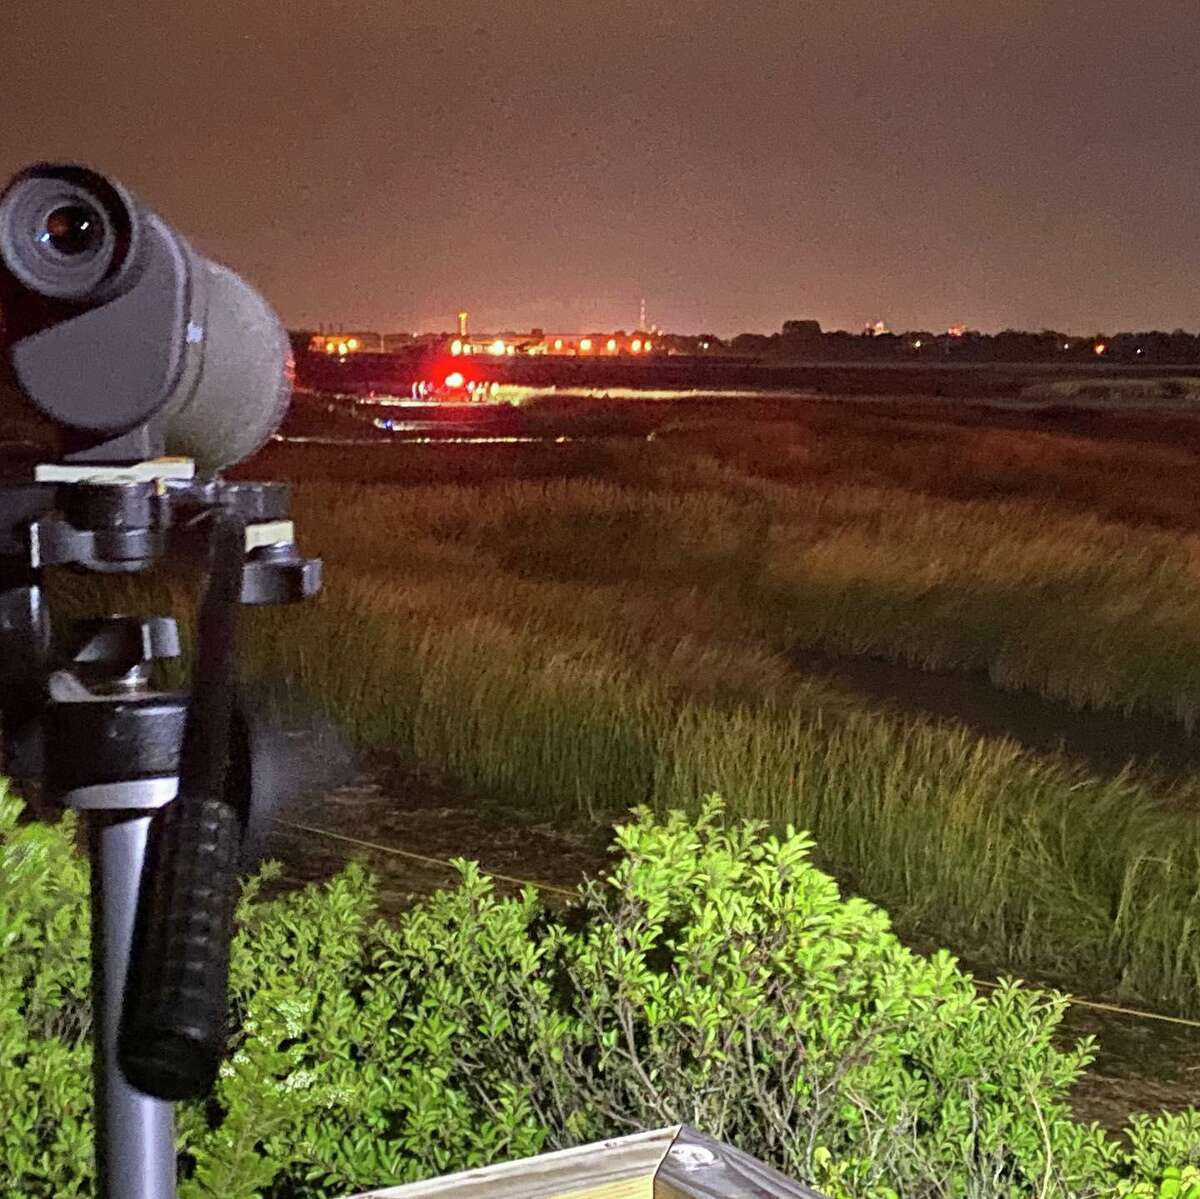 It took fire crews nearly two hours to free a fisherman trapped in mud in the marshlands off of Smith's Point in Milford, Conn, on Wednesday, Sept. 8, 2021.